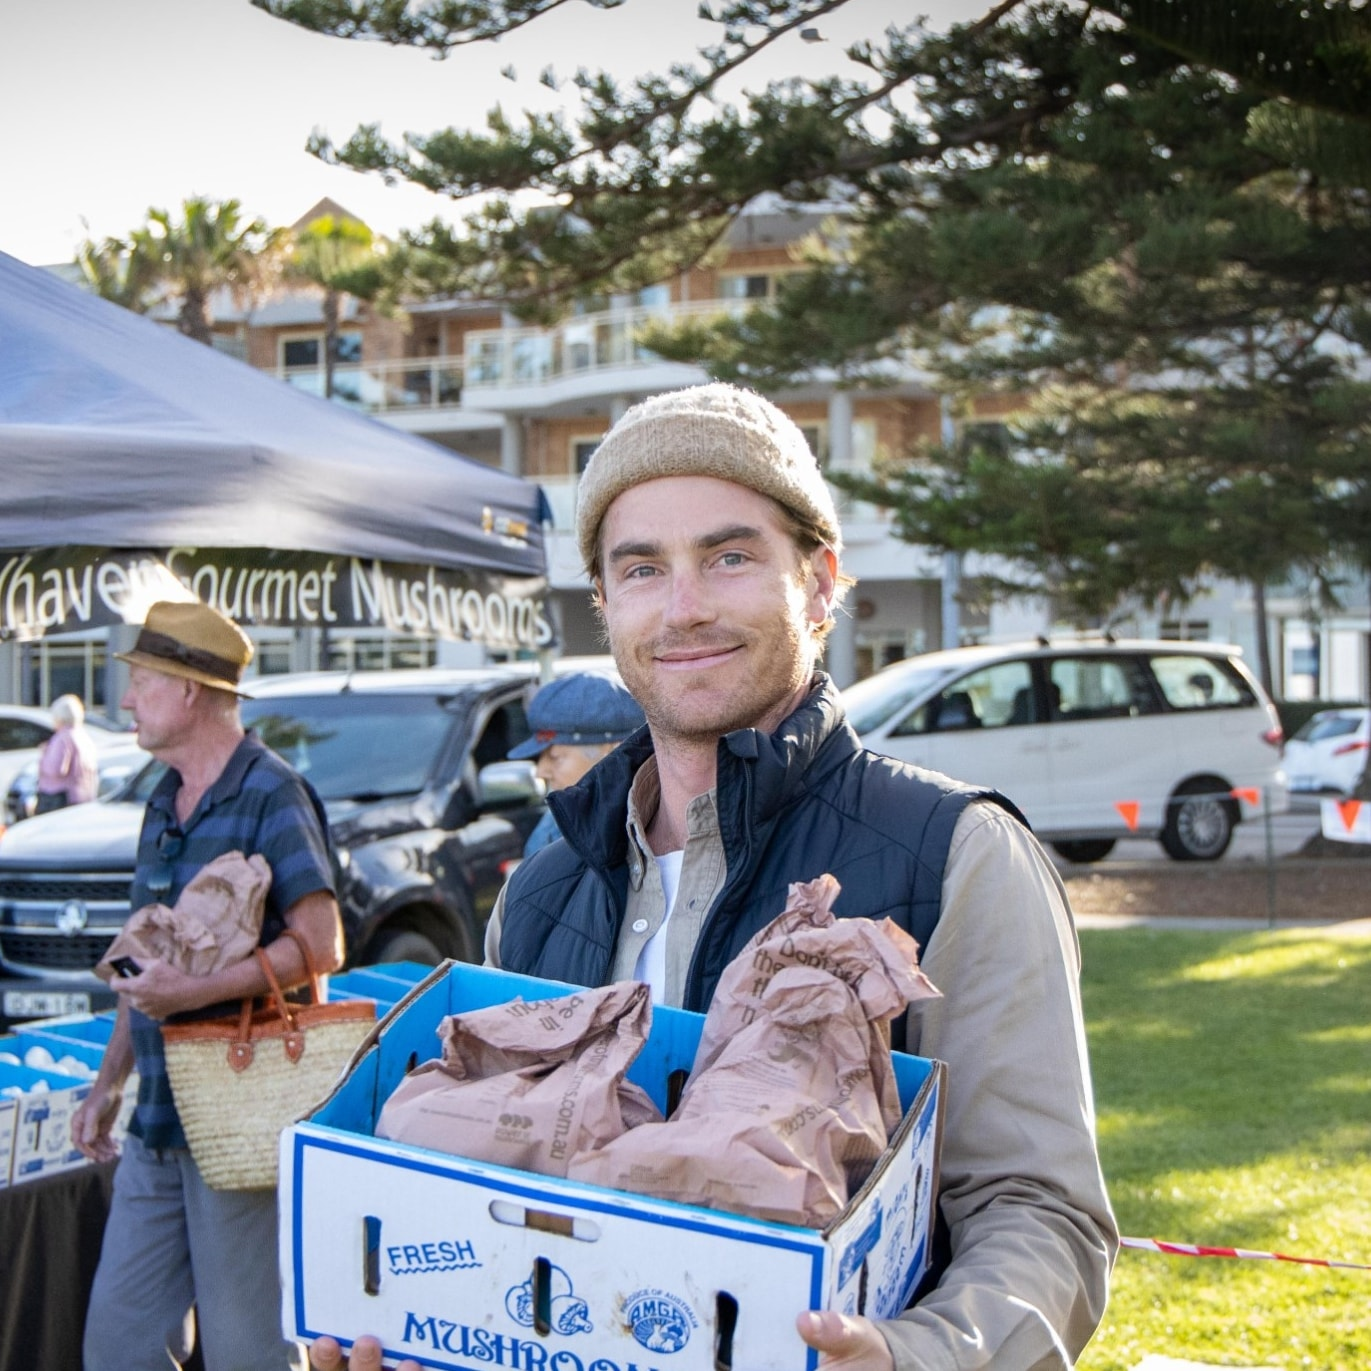 Hayden Quinn at the Kiama Farmers Markets © Boomtown Pictures